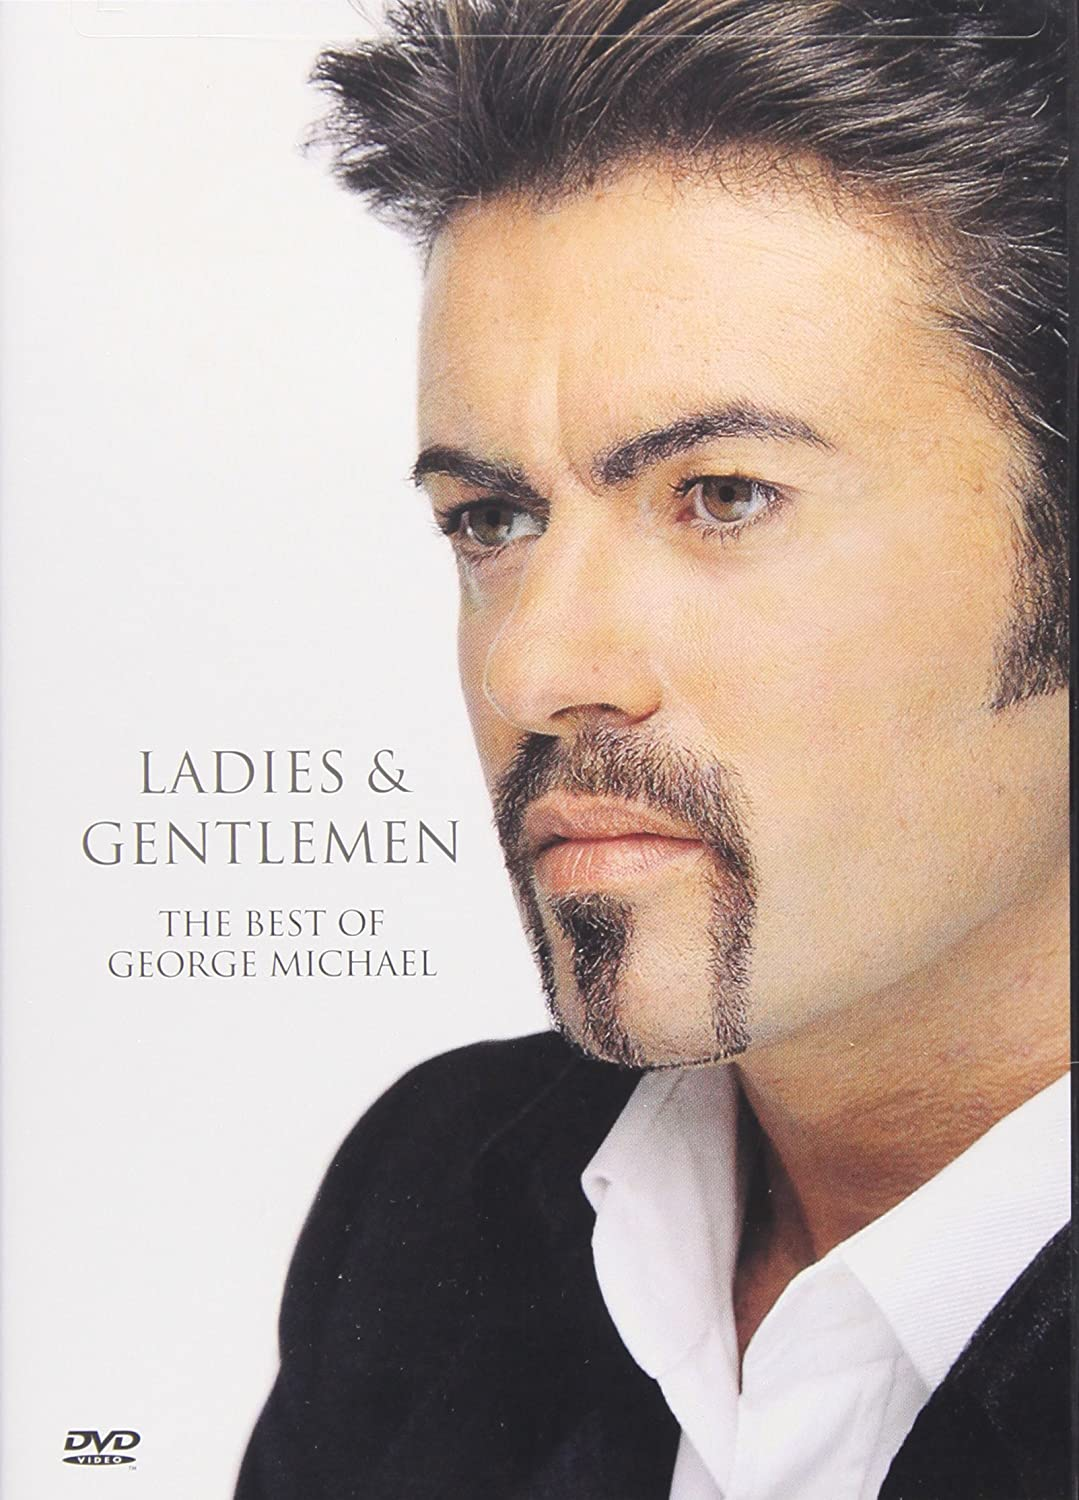 Ladies and Gentlemen: The Best of George Michael Julie Newmar Aretha Franklin Cindy Crawford Tyra Banks